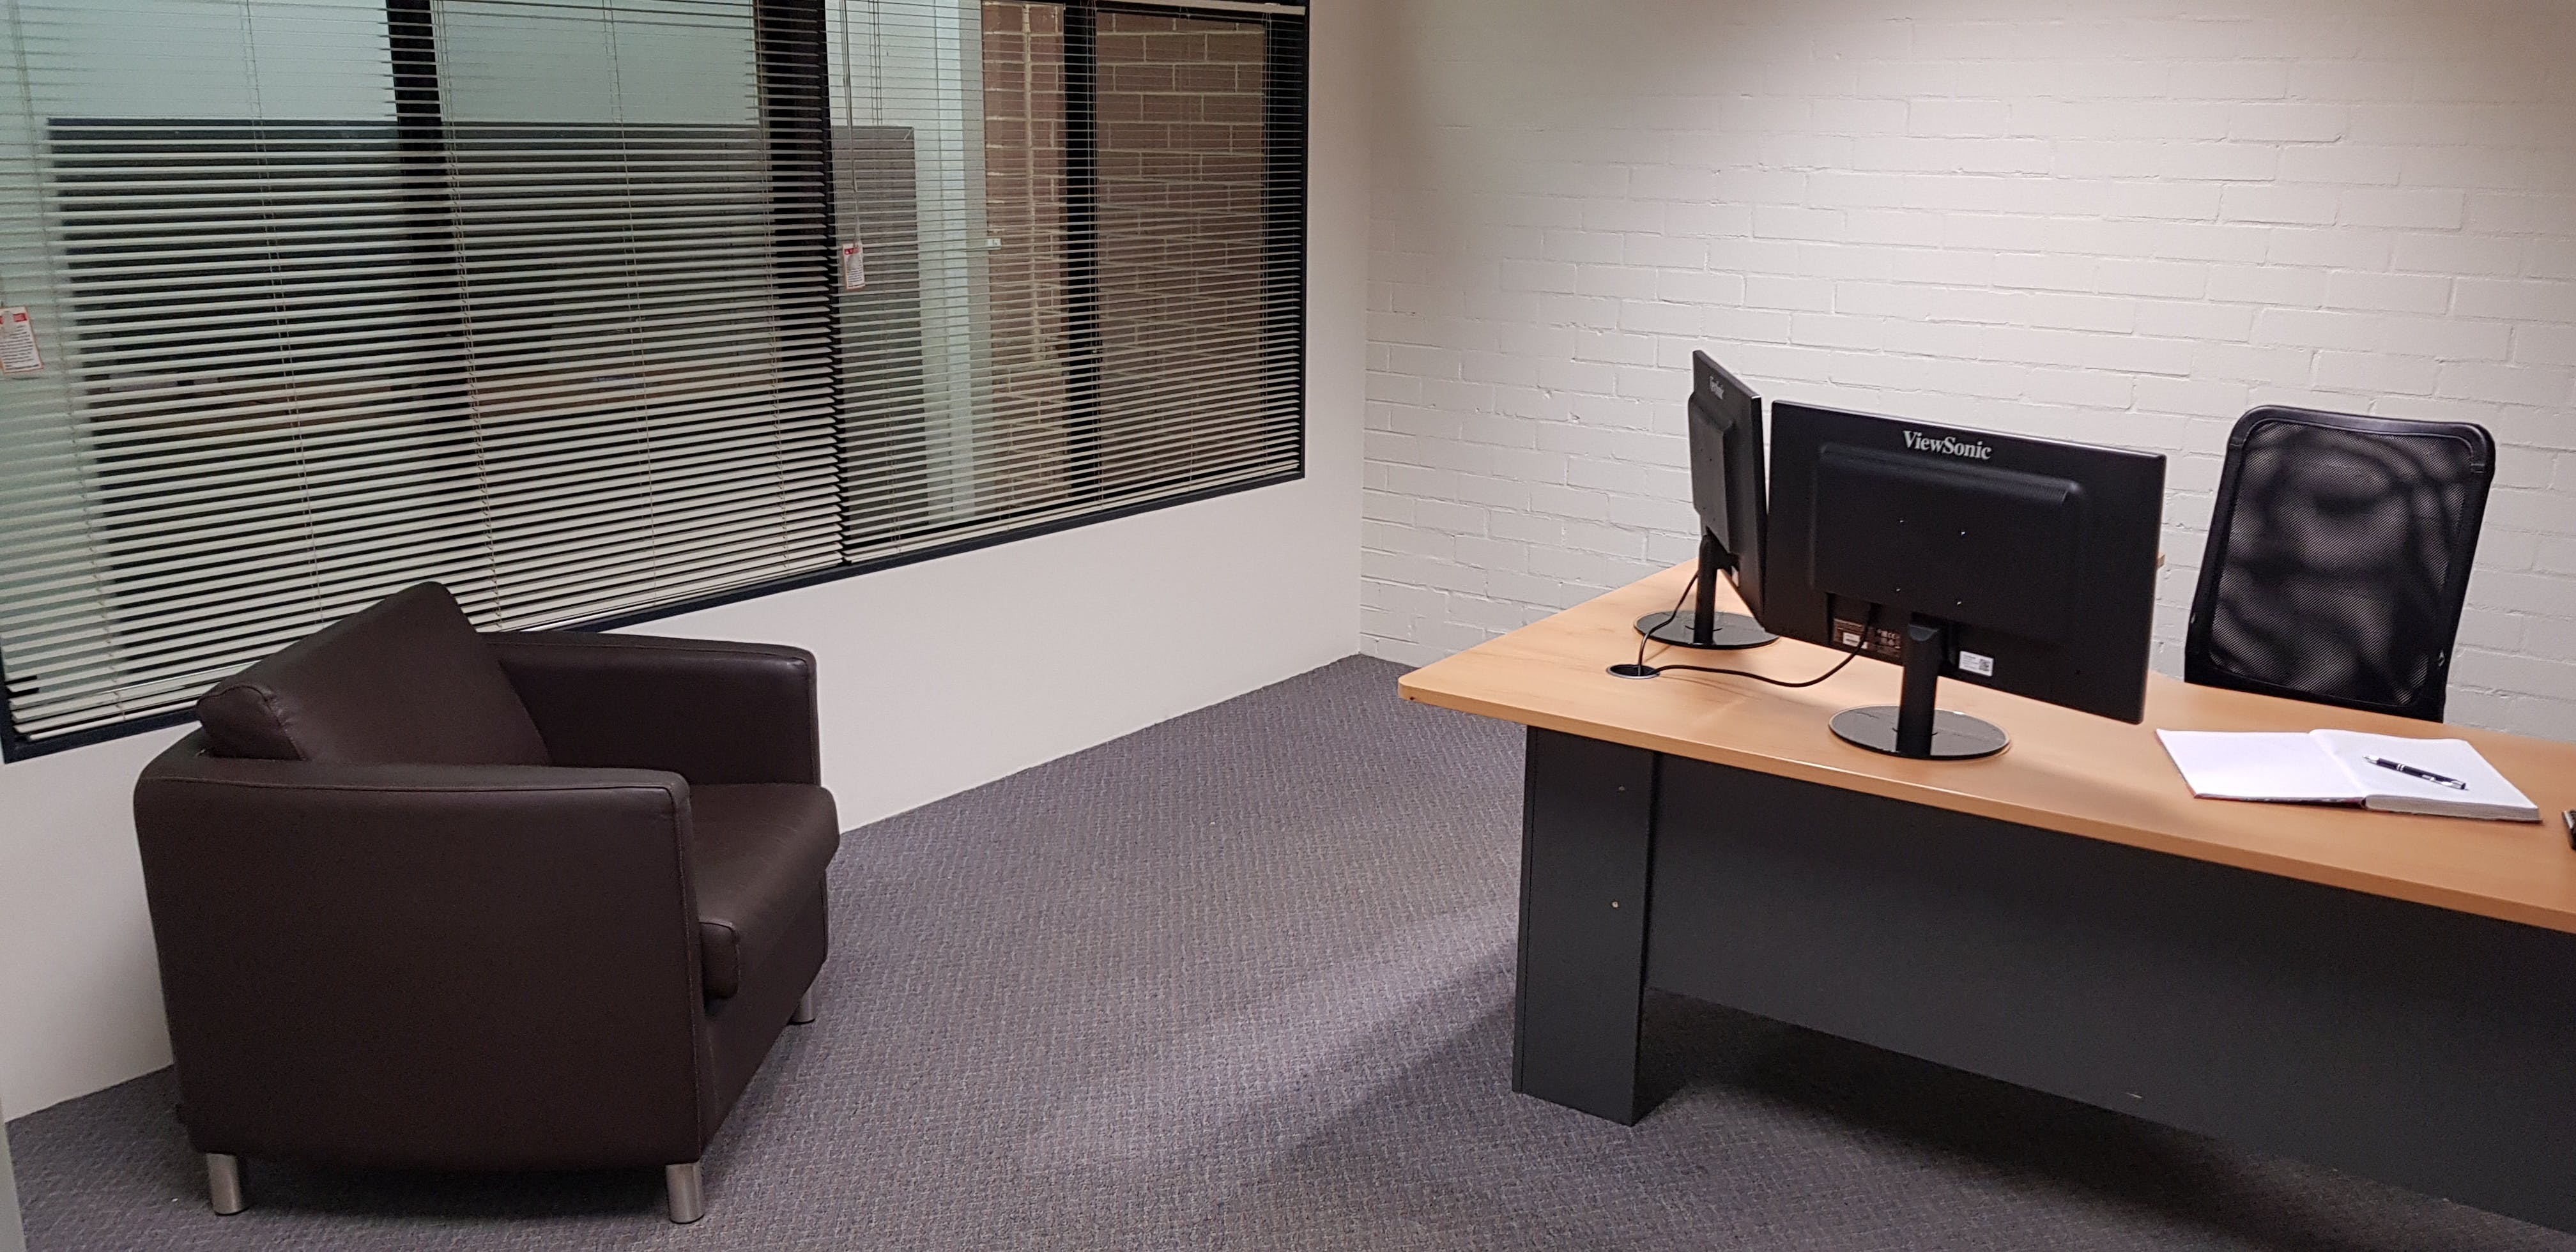 Suite 1, private office at 10 Ledgar, image 1